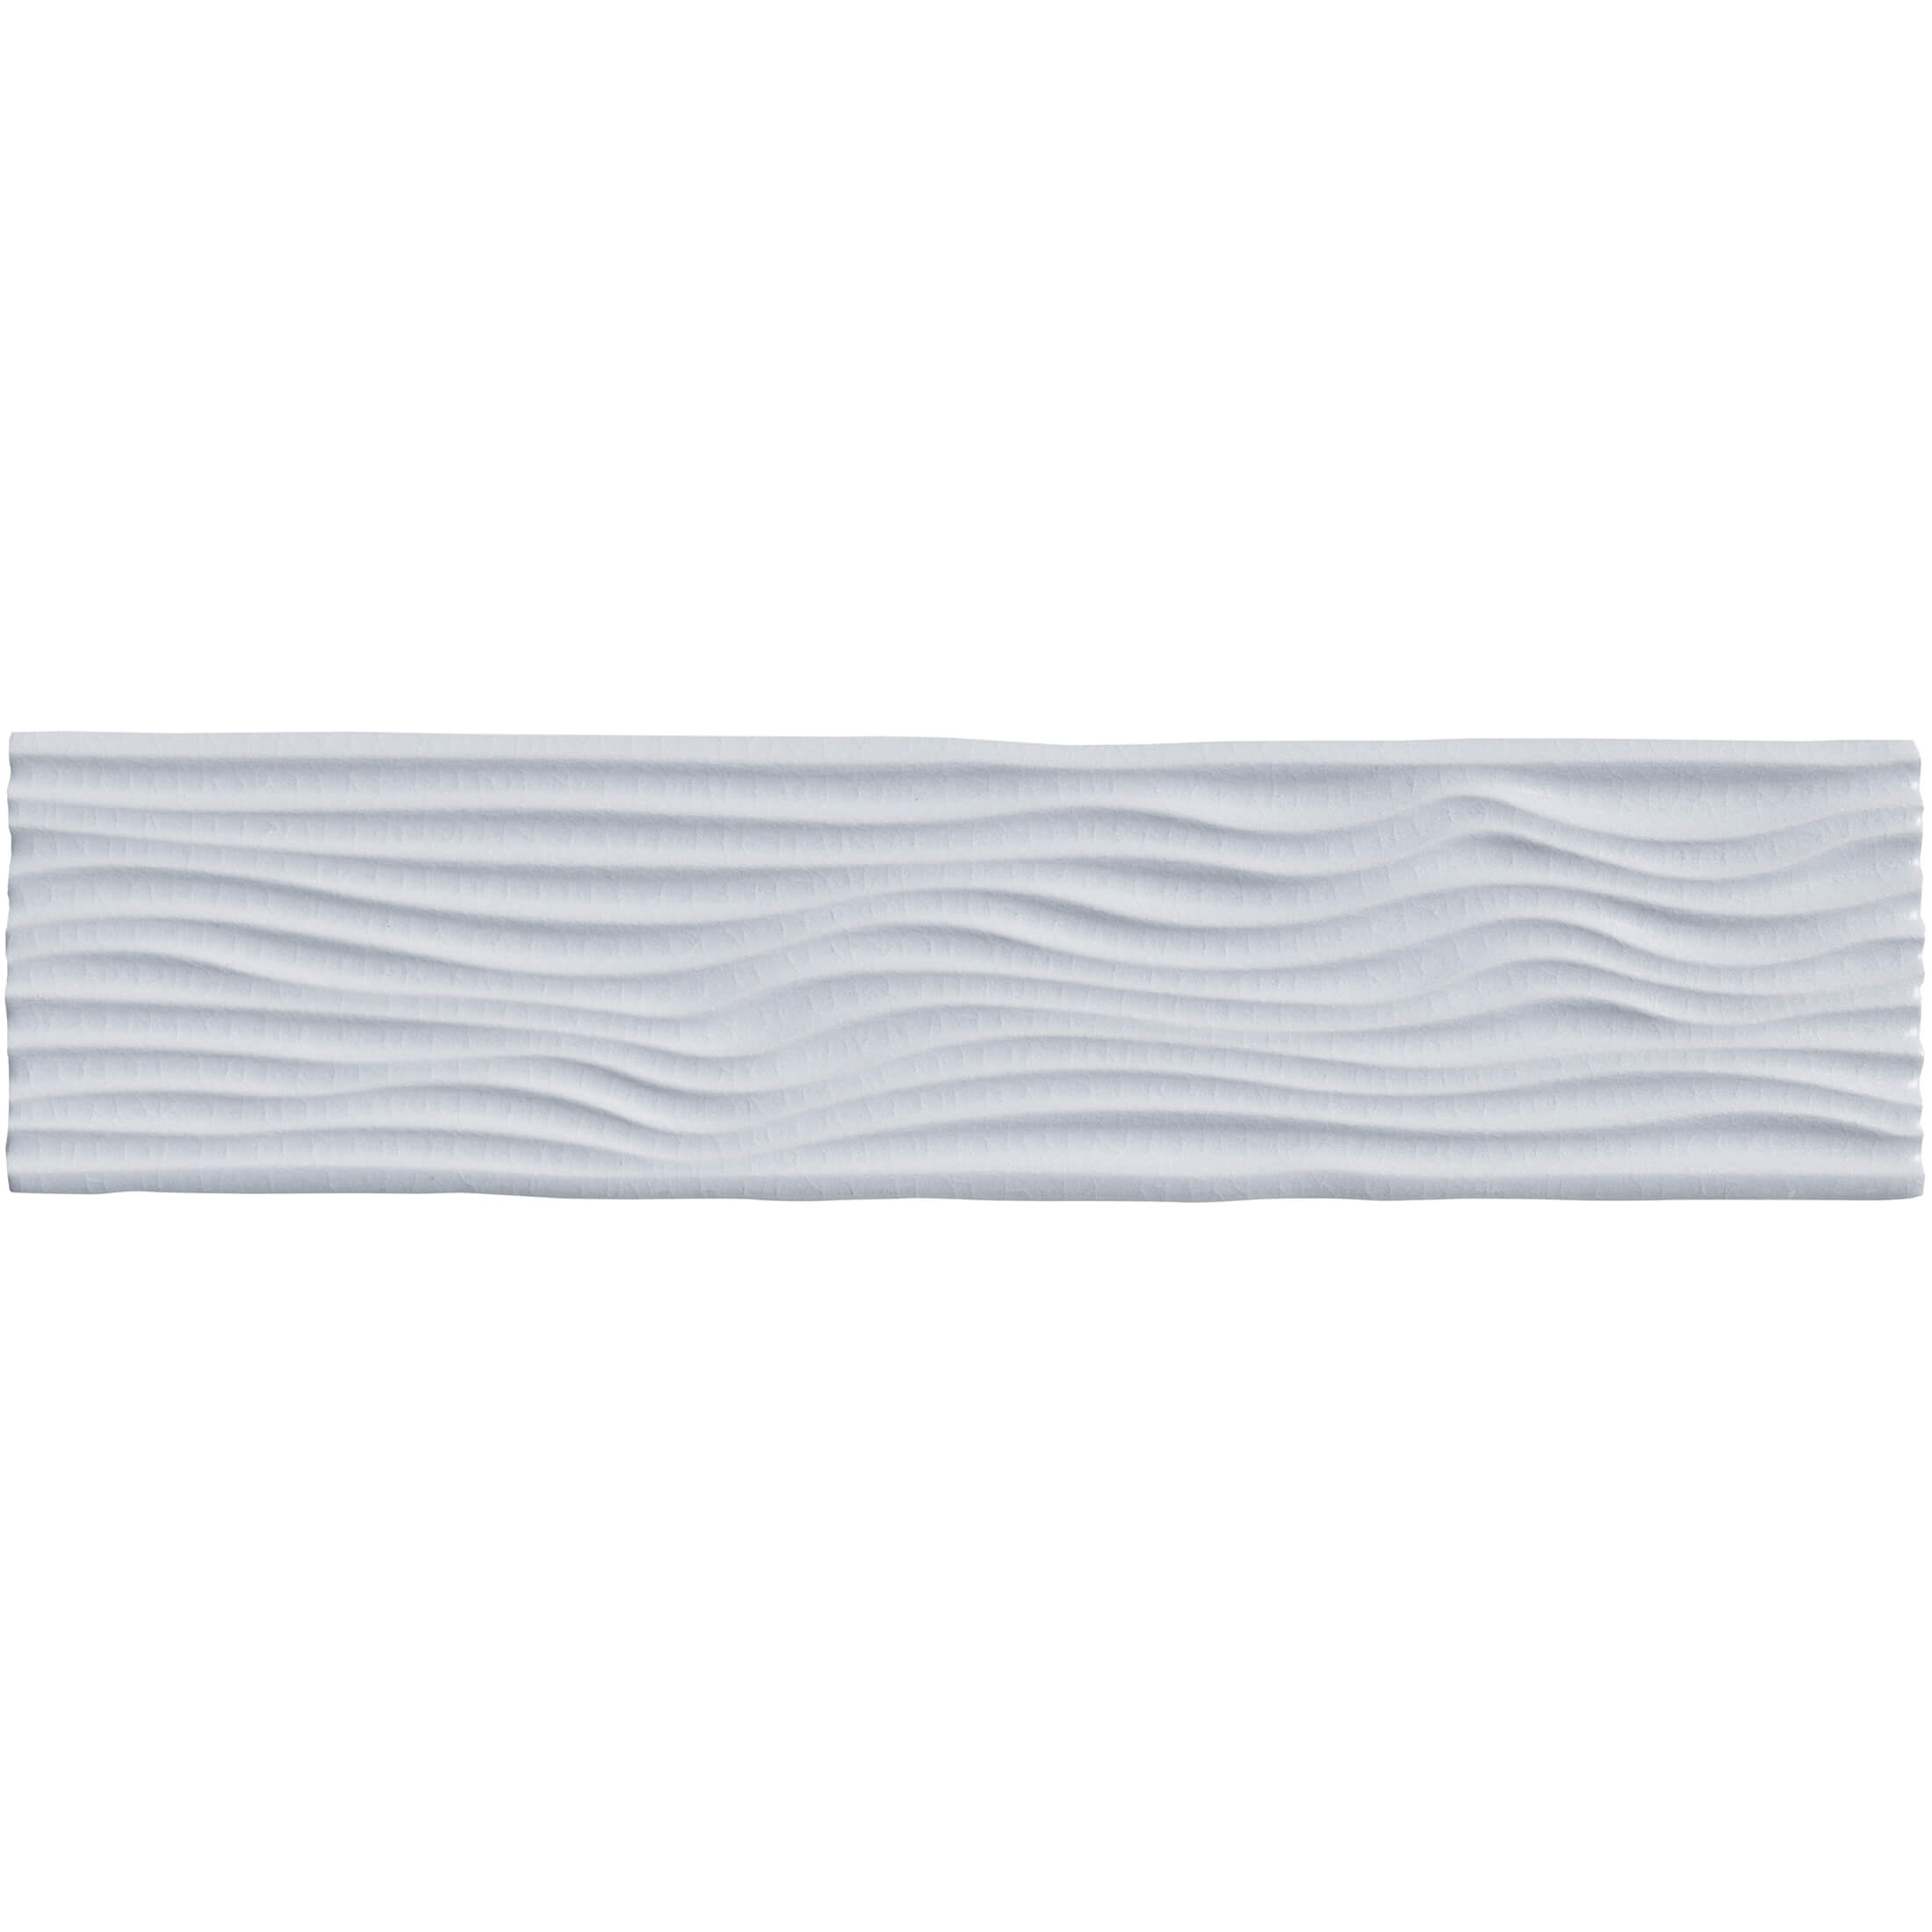 ADEH1018 - LISO WAVES - 7.5 cm X 30 cm